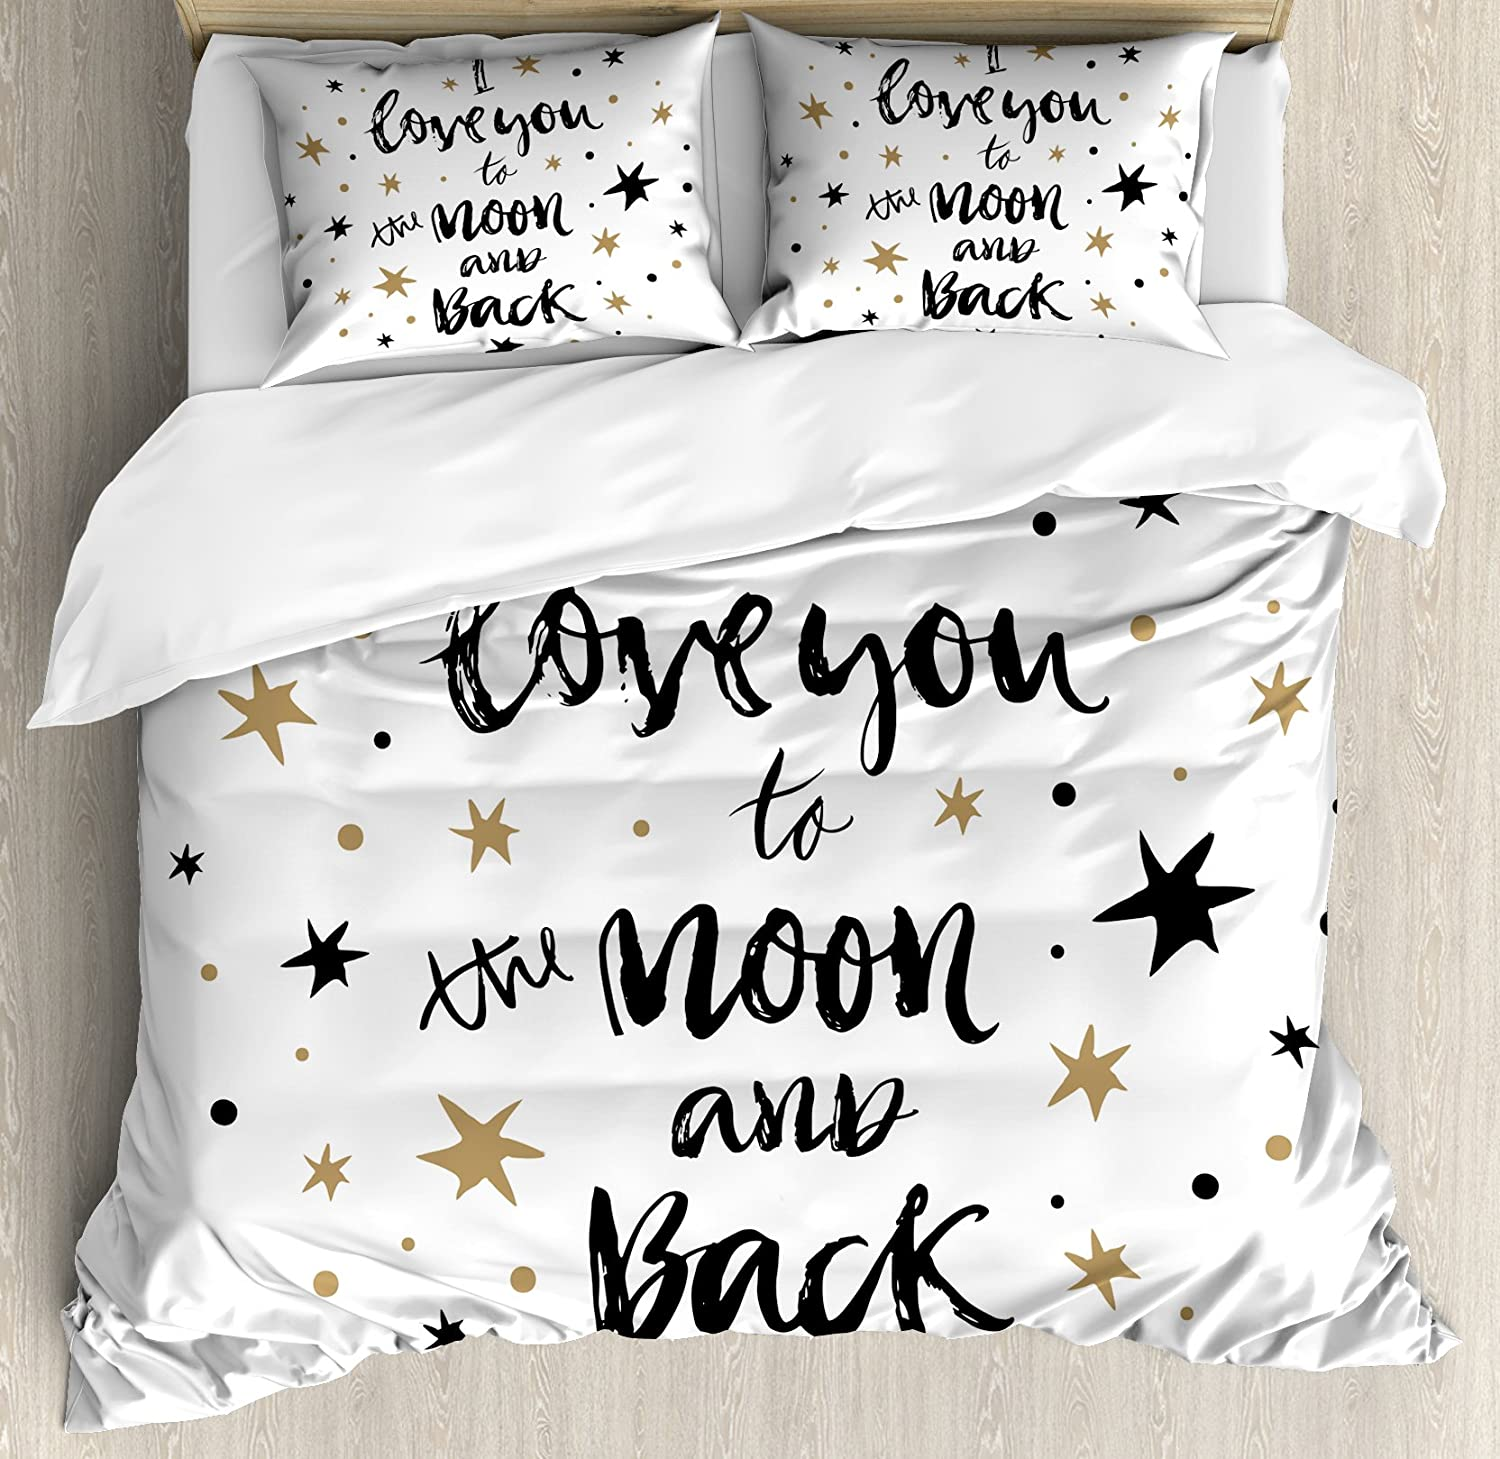 Ambesonne I Love You Duvet Cover Set, Hand Drawn I Love You to The Moon and Back Words with Stars Celebration Theme, Decorative 3 Piece Bedding Set with 2 Pillow Shams, Queen Size, Black Cocoa